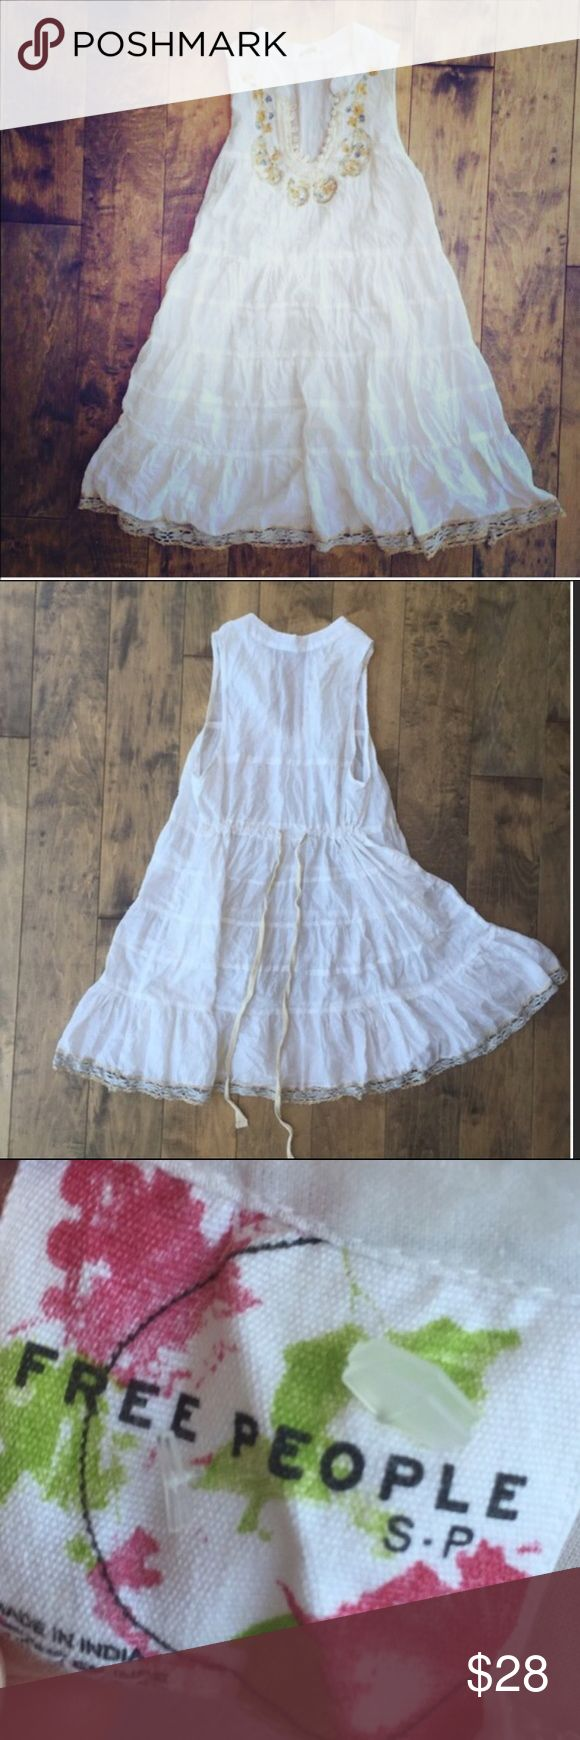 Free People White Embellished Dress Free People embellished white dress. Worn and washed a few times but in great condition. Soft and light weight. Great as is or over leggings! Free People Dresses Midi